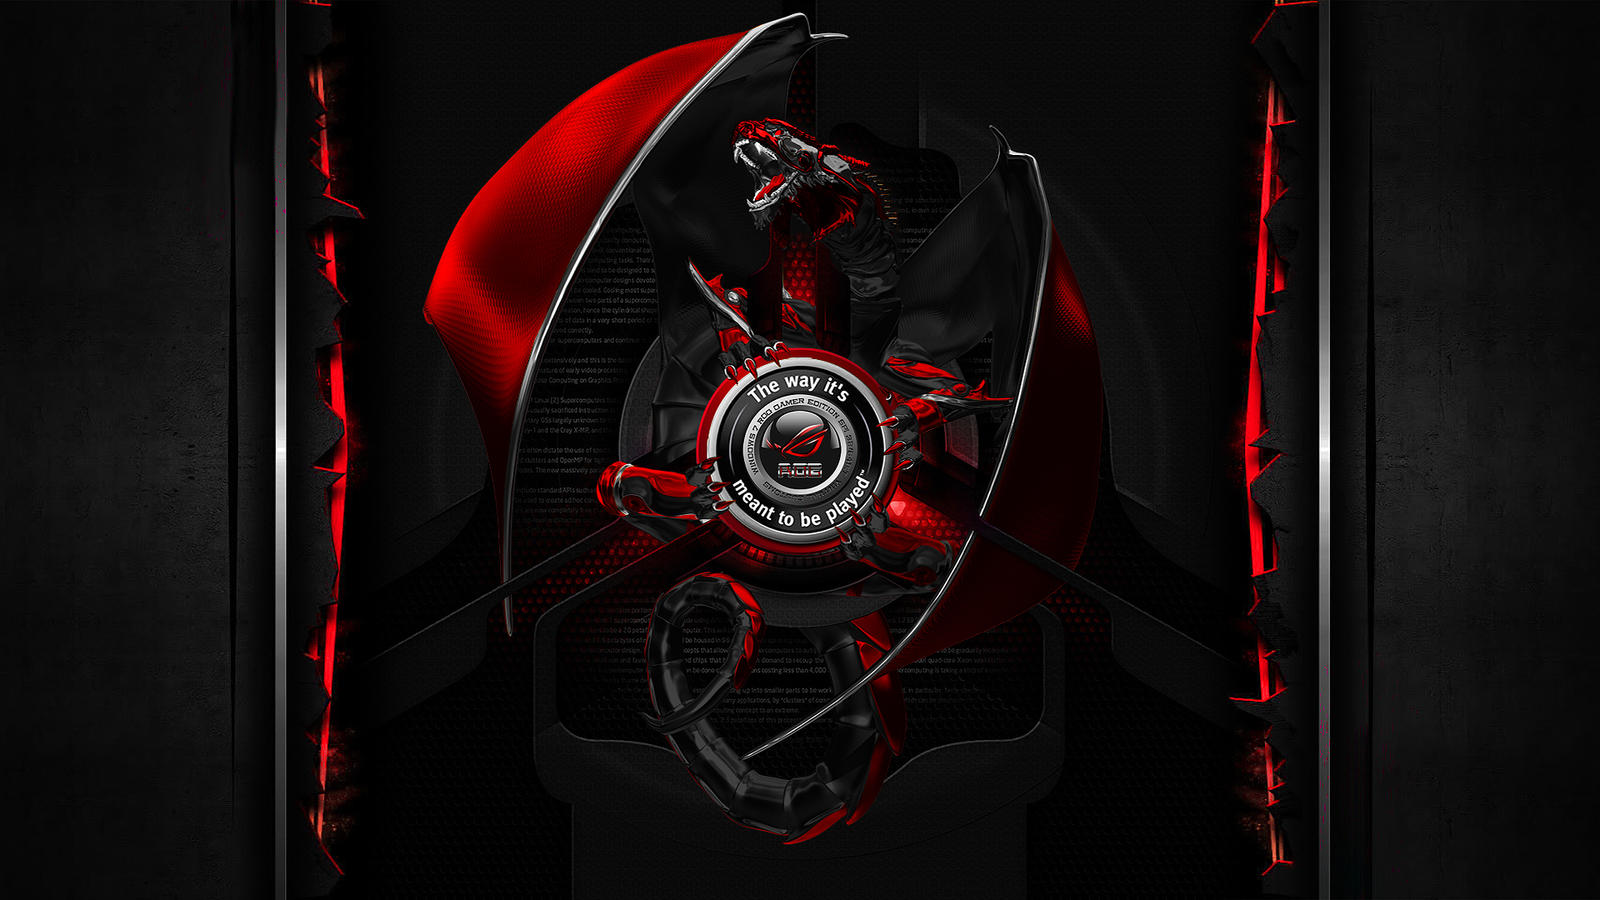 10 New Msi Gaming Series Wallpaper Full Hd 1920 1080 For: Republic Of Gamer Dragon Edition By Holly69 On DeviantArt